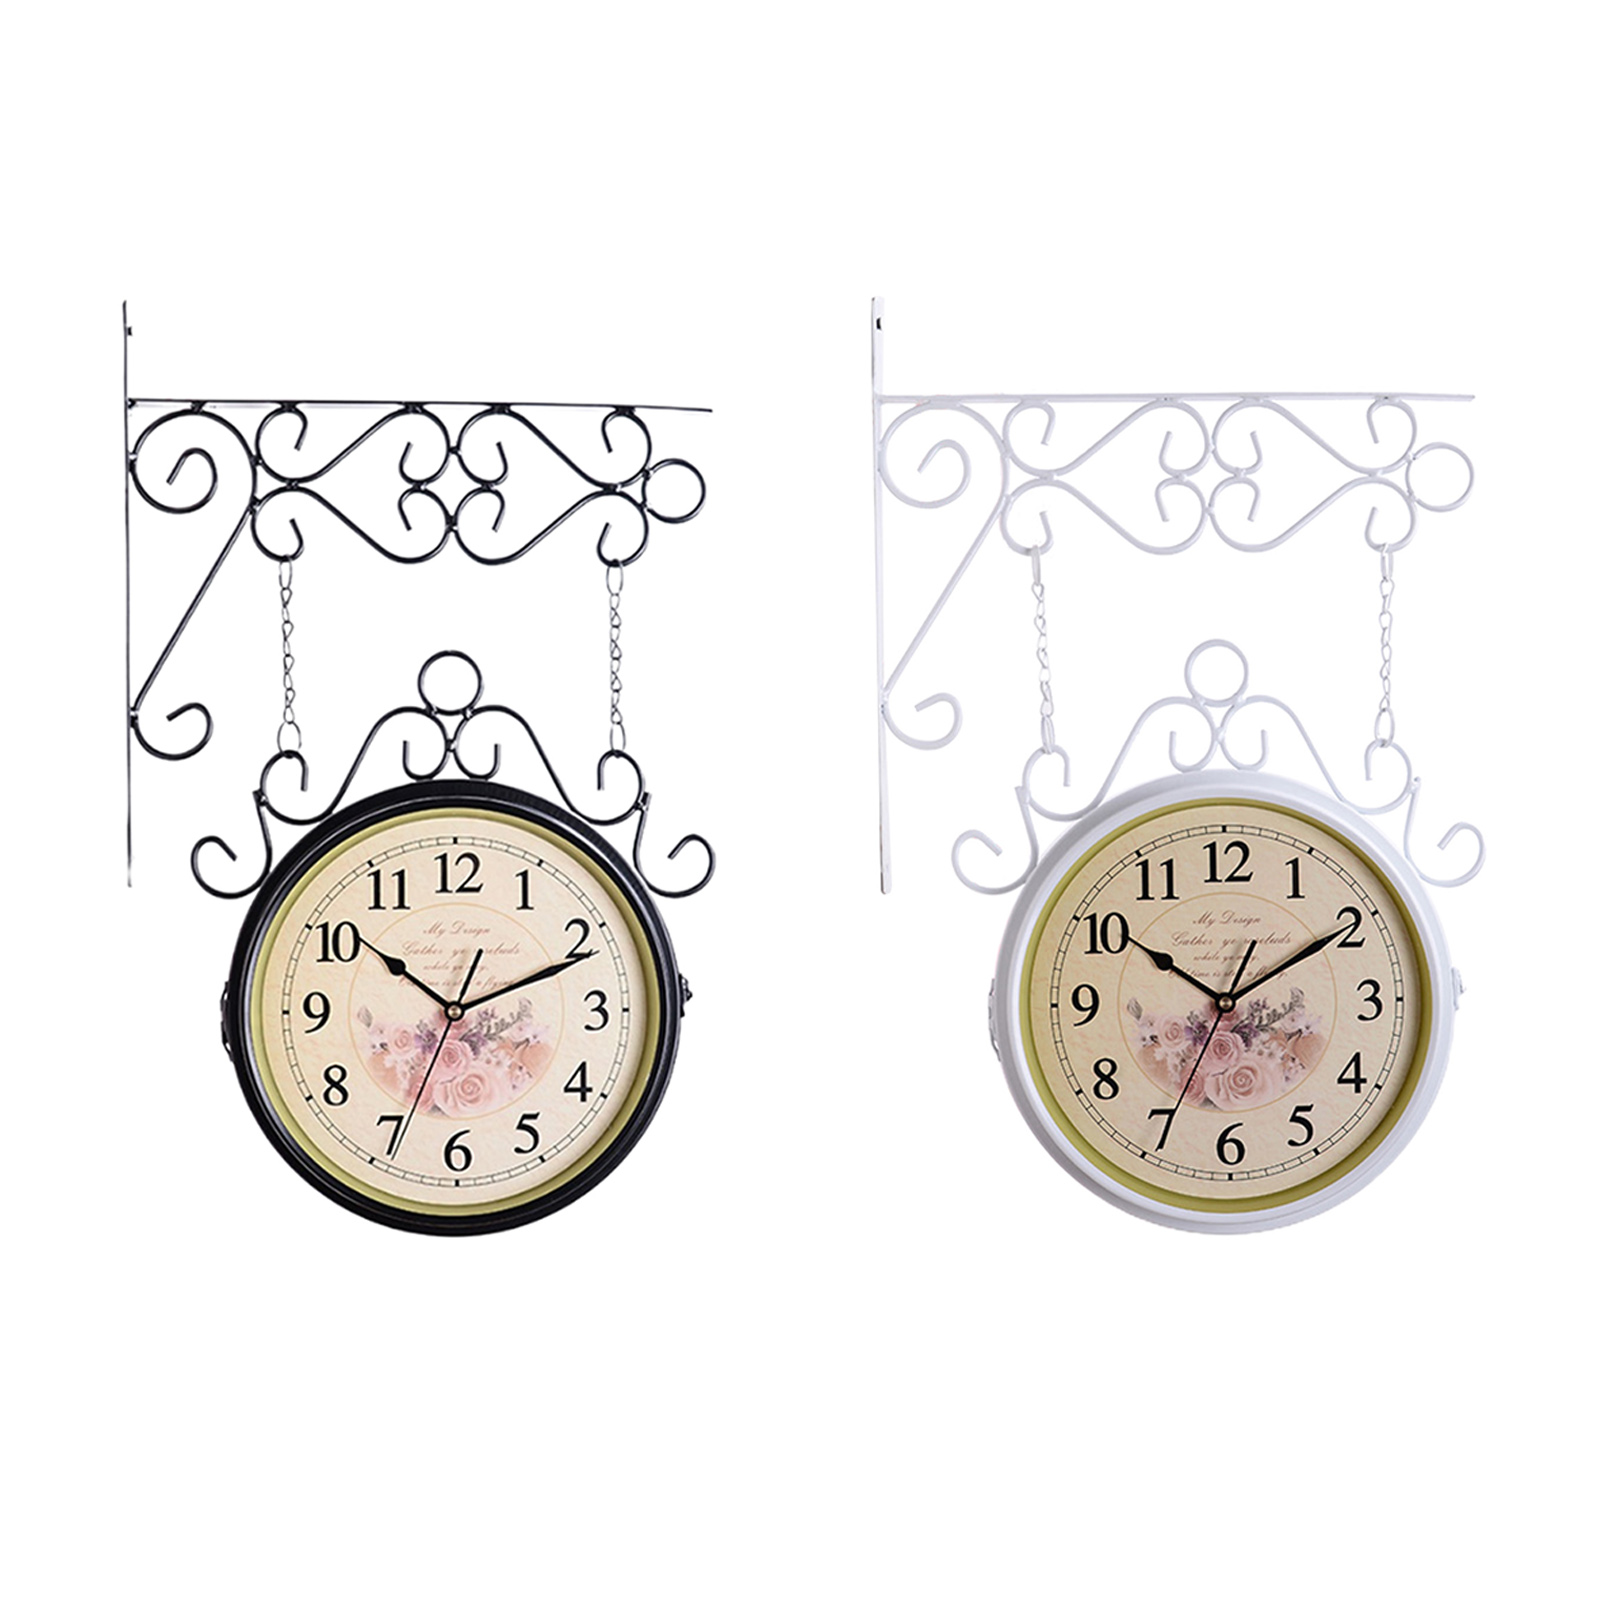 25cm Double Sided Retro Station Outdoor Garden Wall Clock Home Office Decor